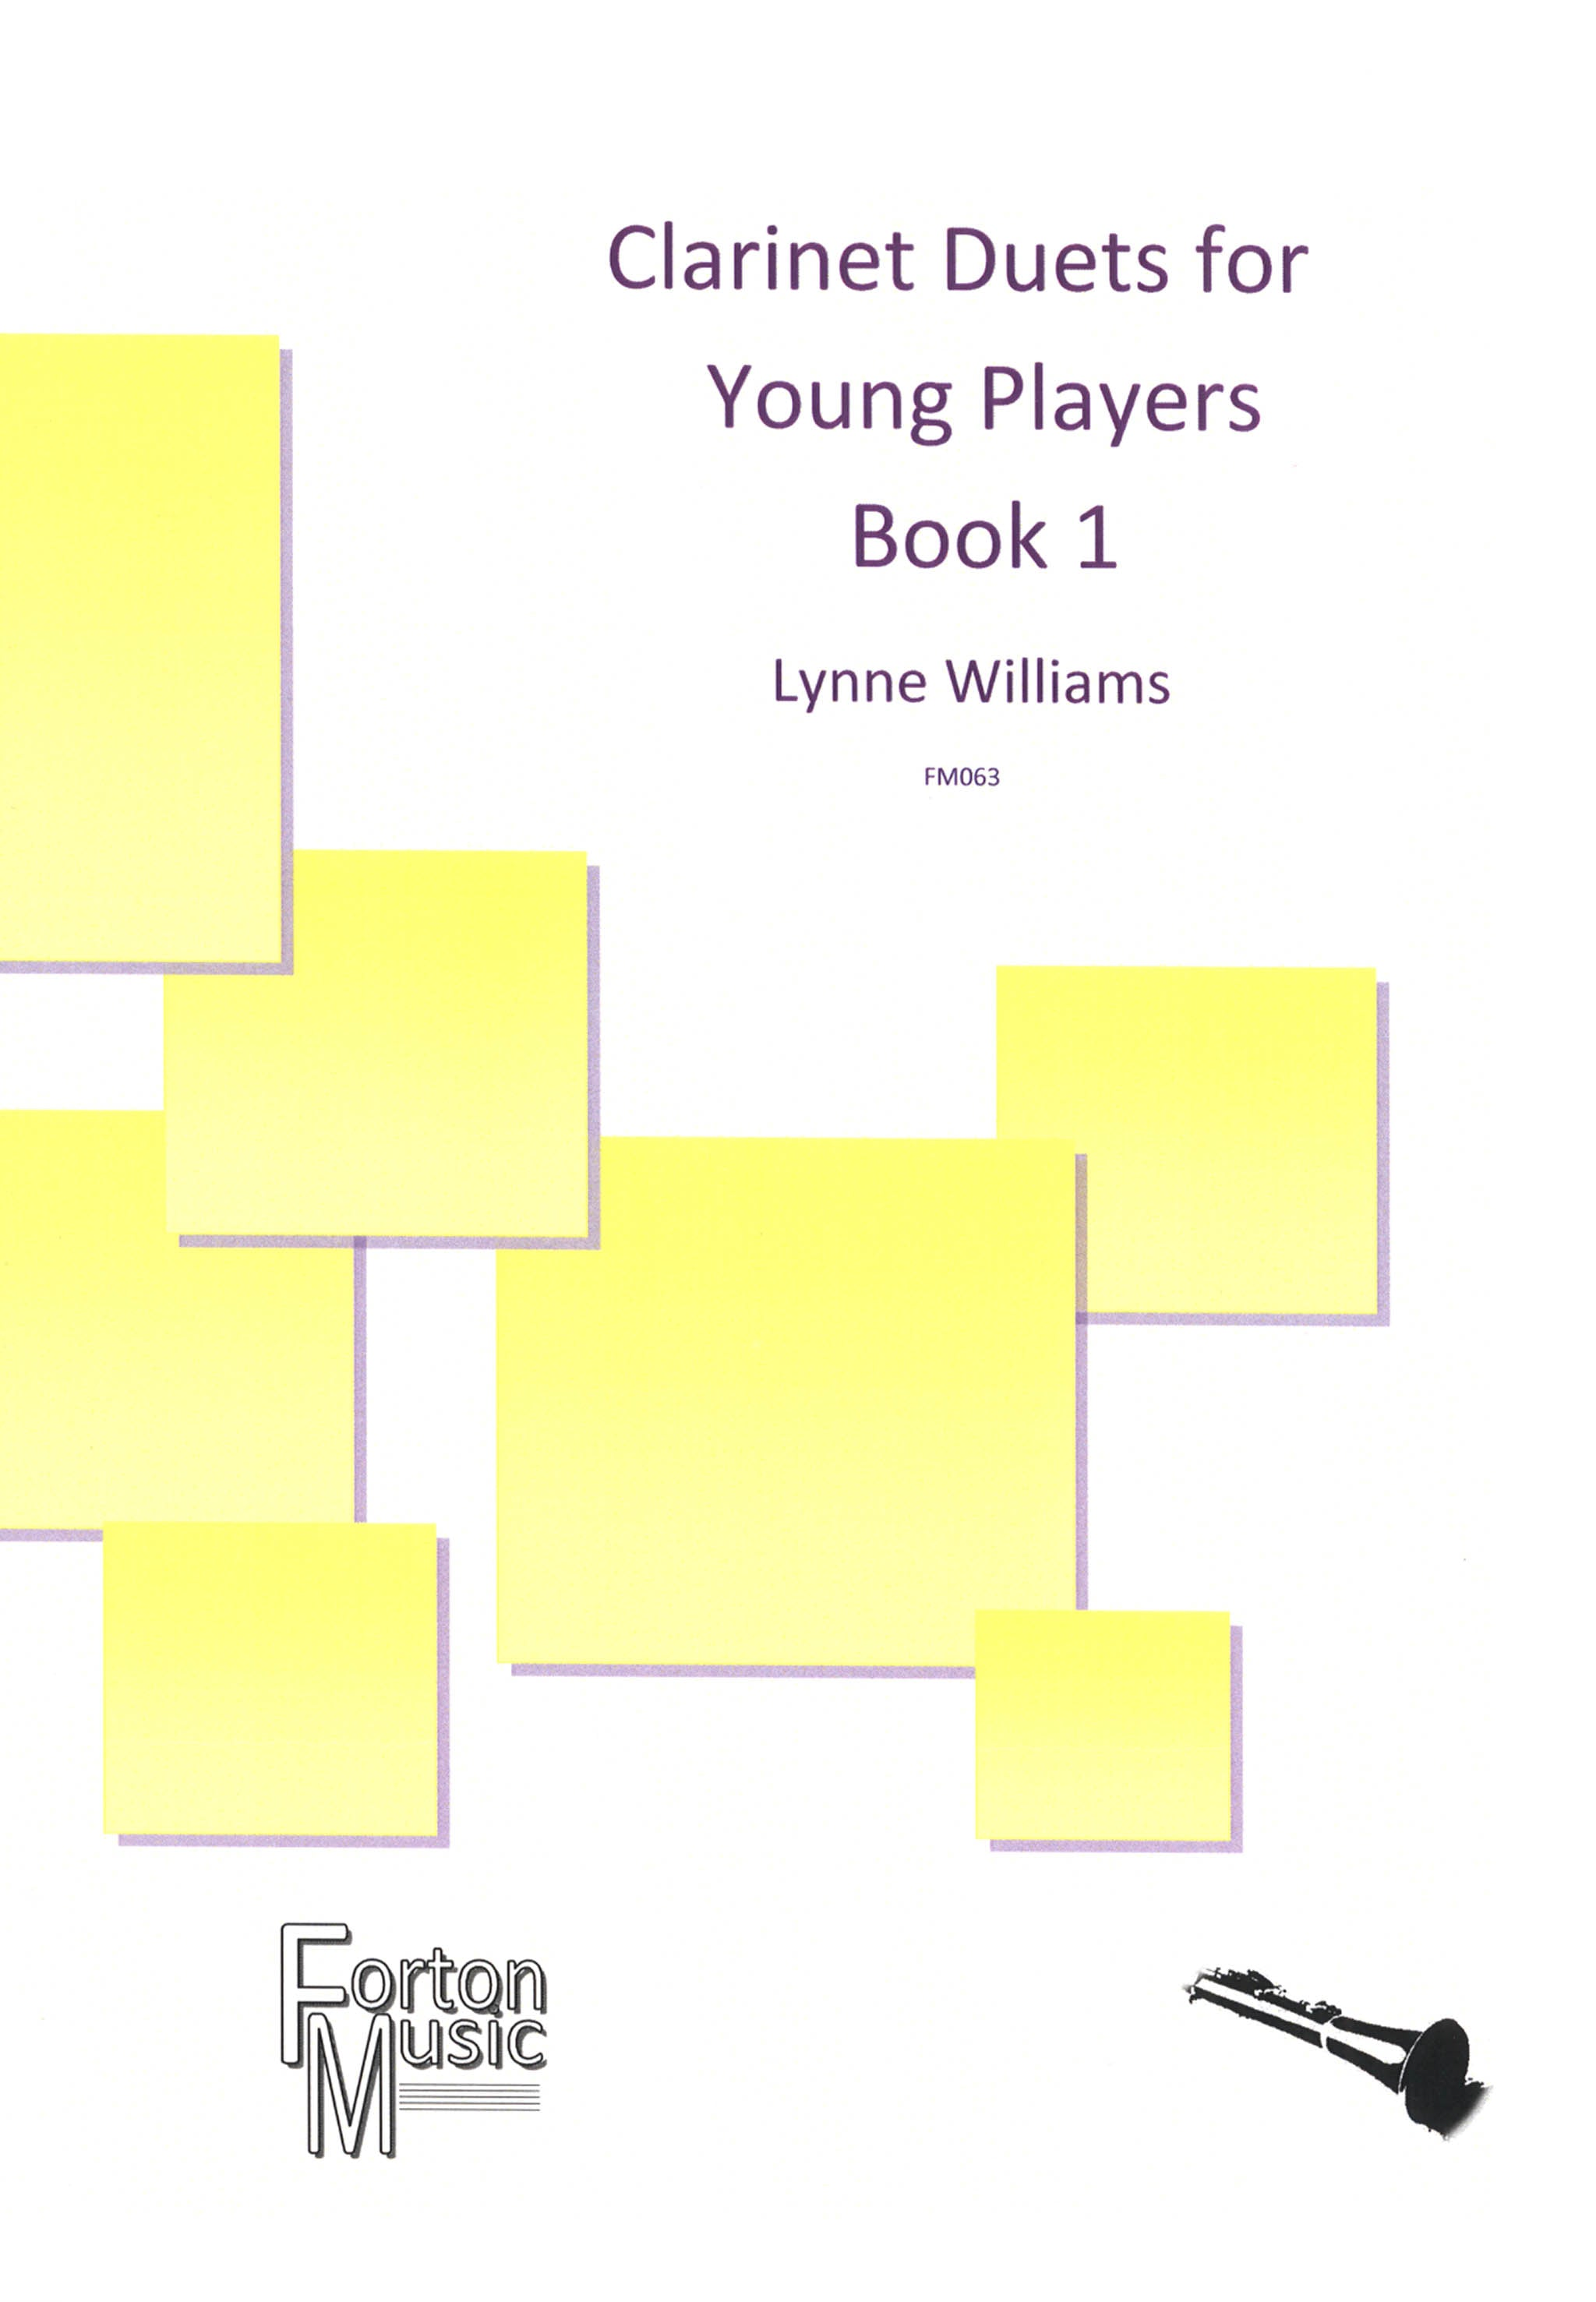 Clarinet Duets for Young Players, Book 1 Cover